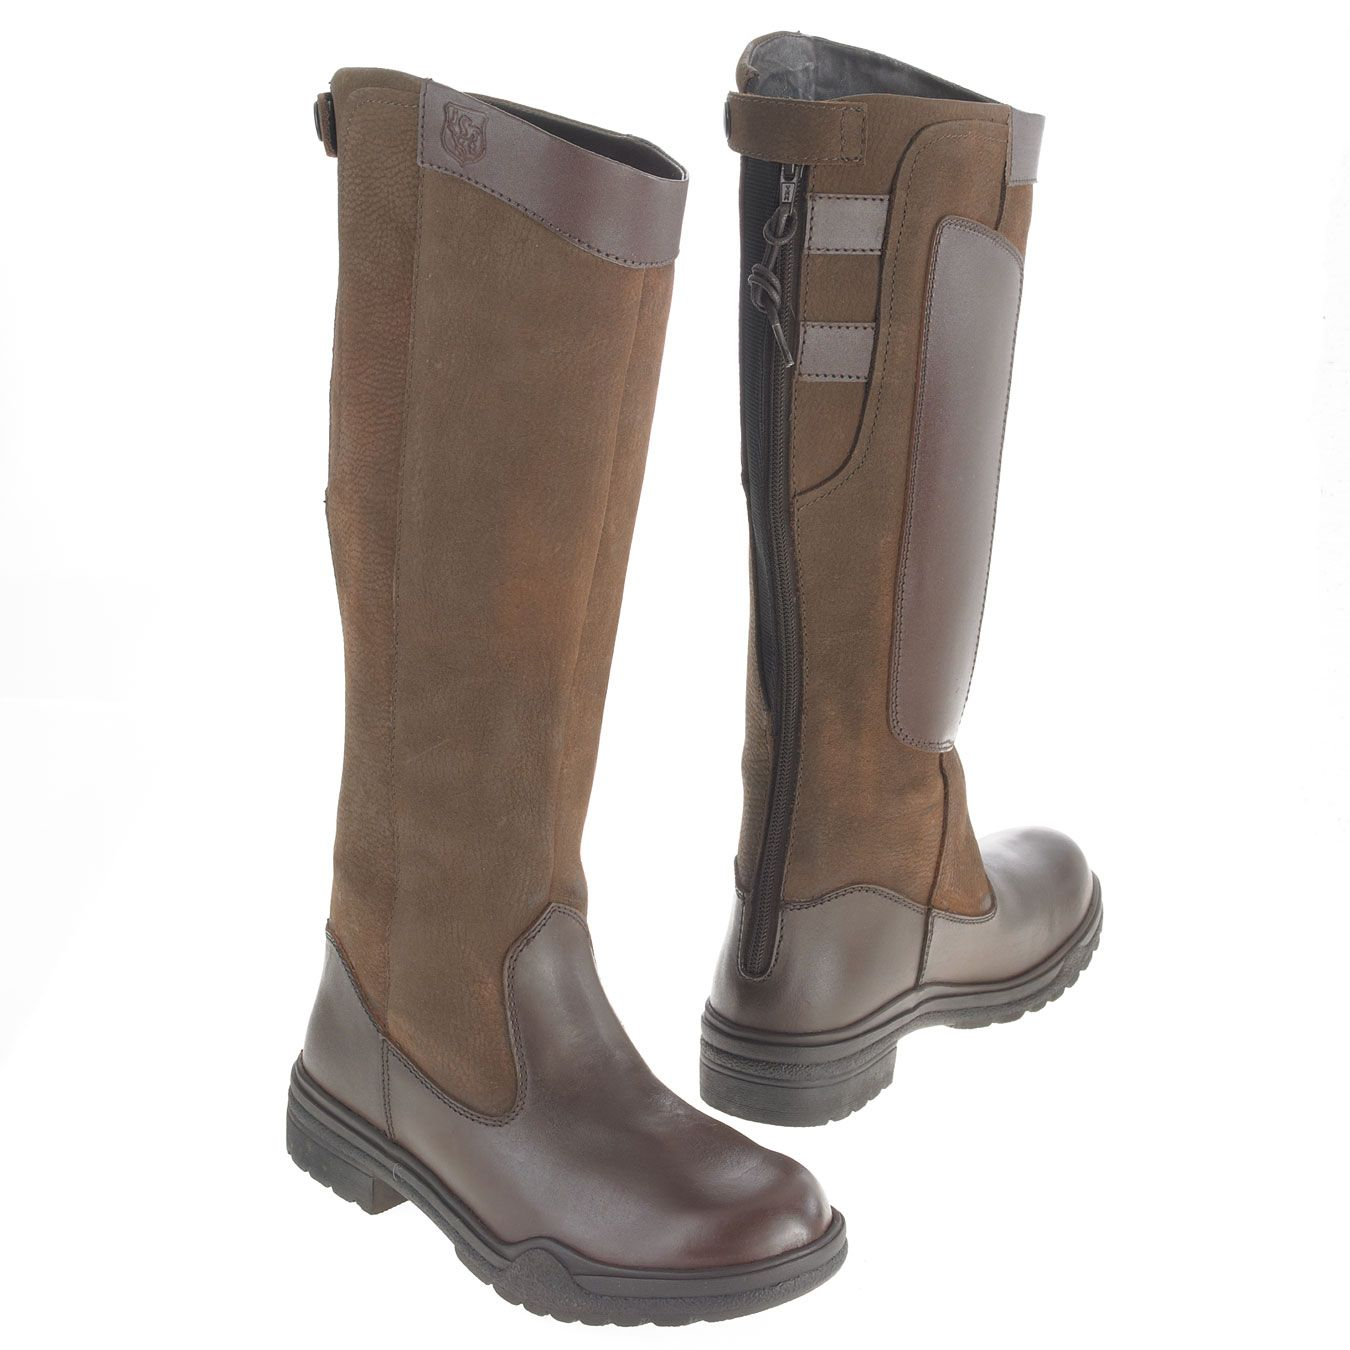 0c65cc28ccf9 I think I need these Just Togs Brookville Riding Boots - Mens Long Riding  Boots - Mens Footwear - Men - Equestrian - Derby House Website